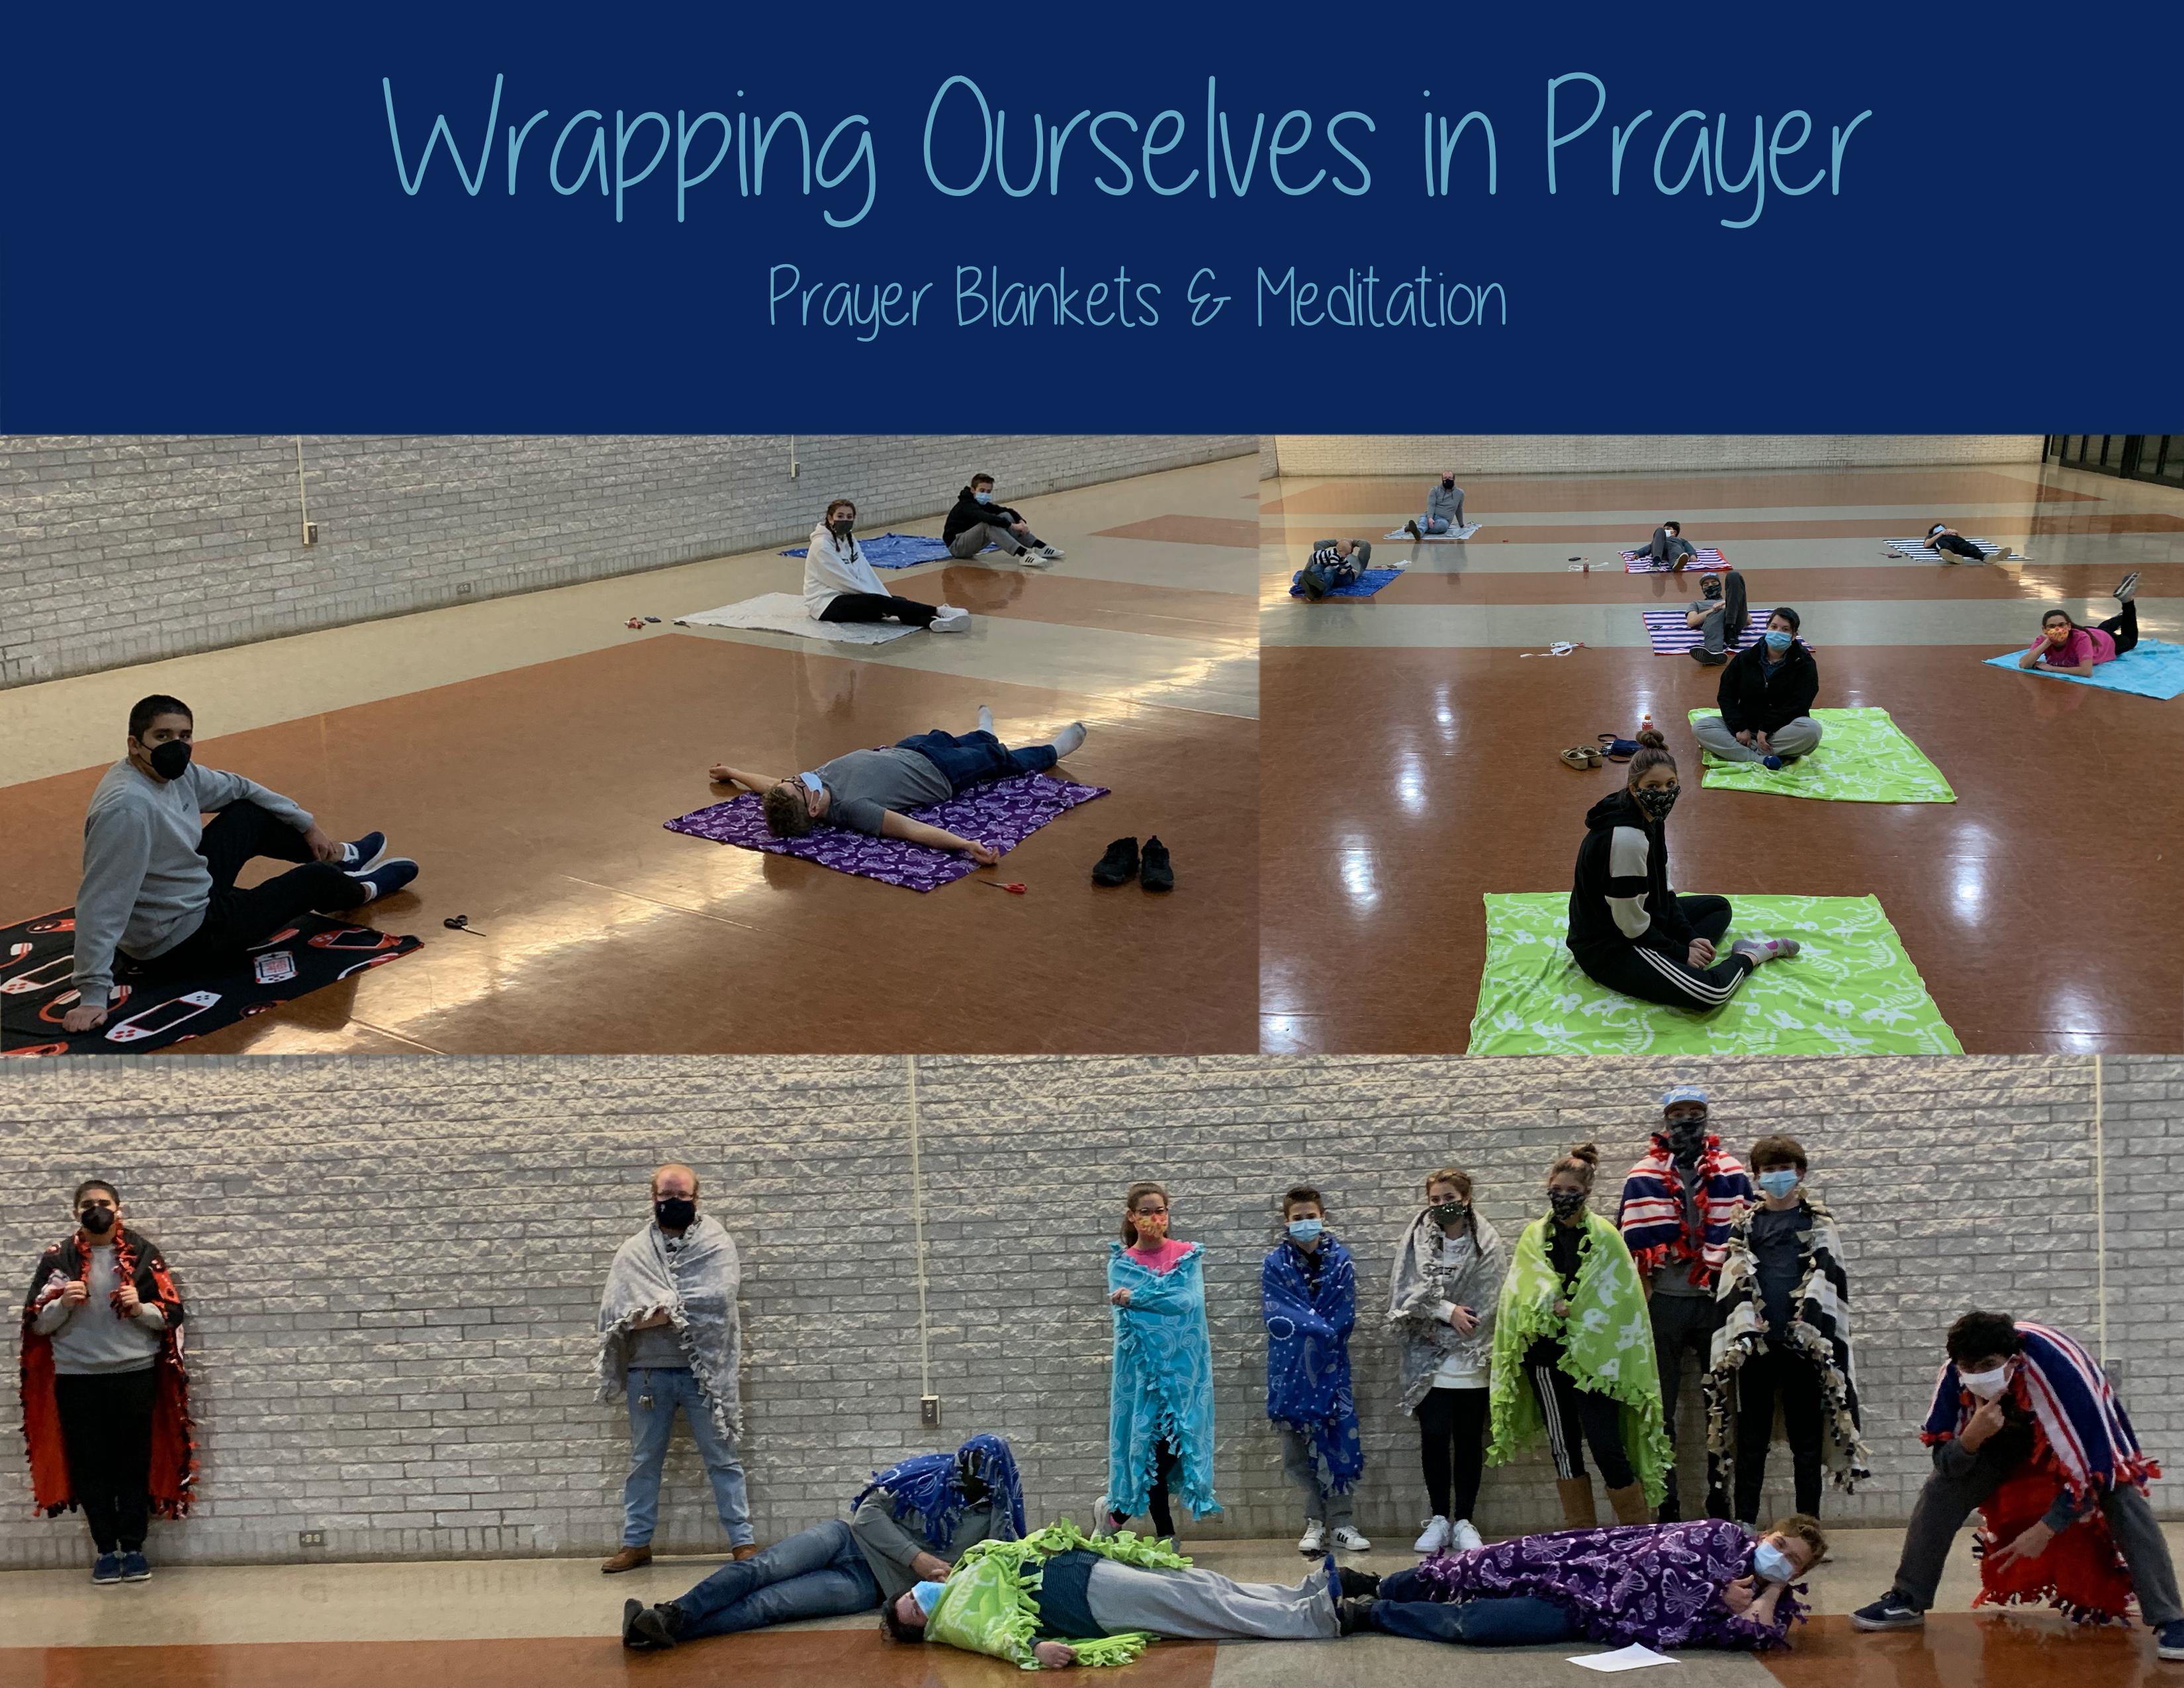 Wrapping Ourselves in Prayer